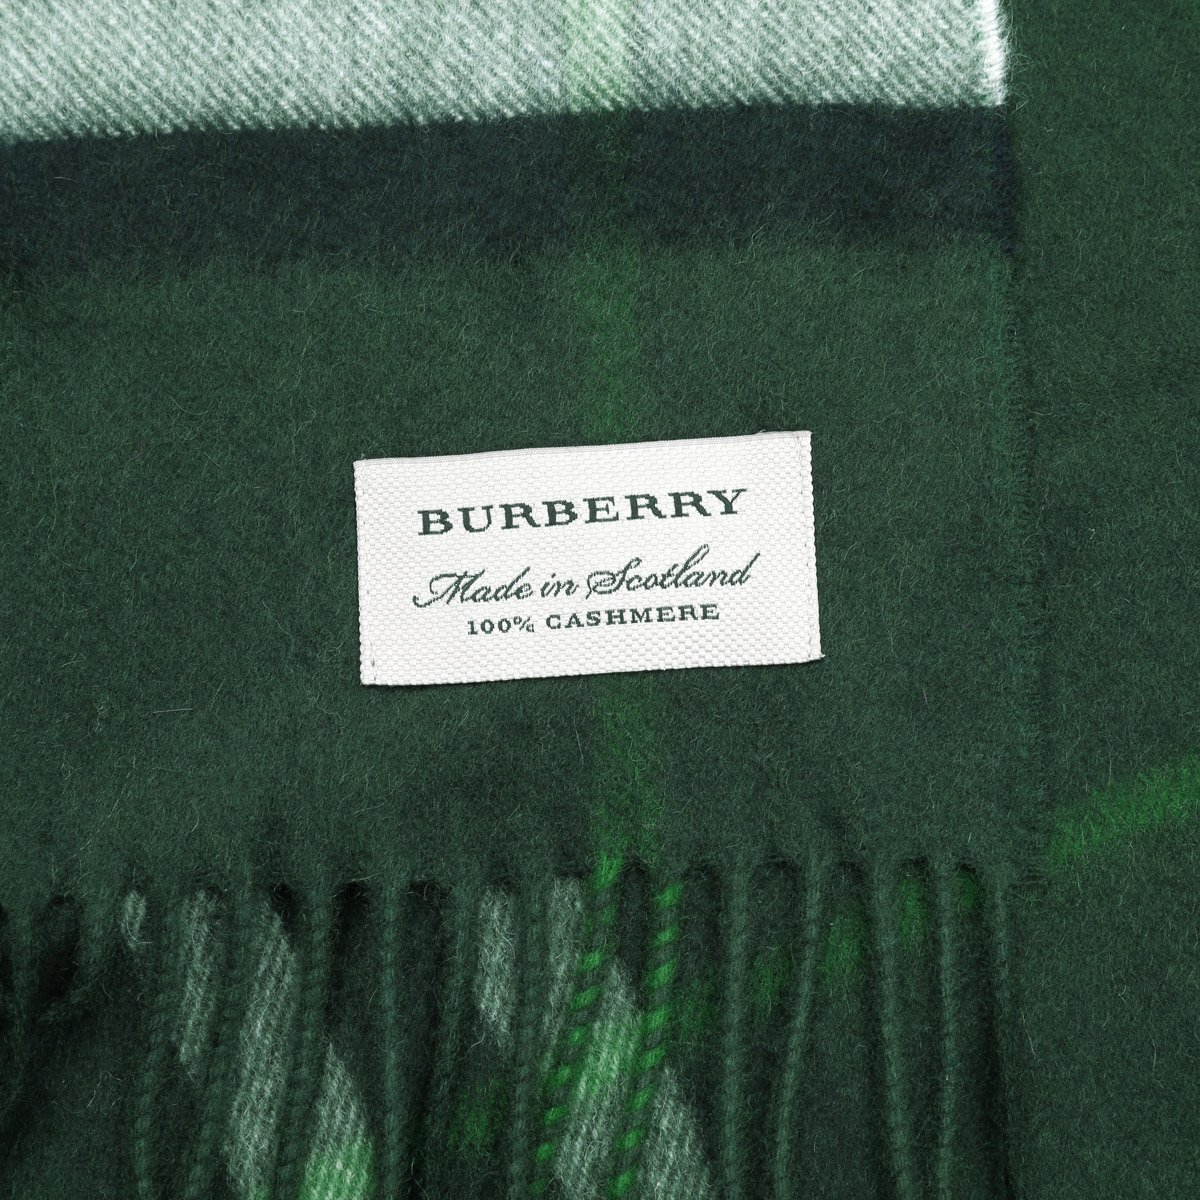 Burberry Women's Classic Check Cashmere Scarf (One Size, Dark Forest Green) by BURBERRY (Image #2)